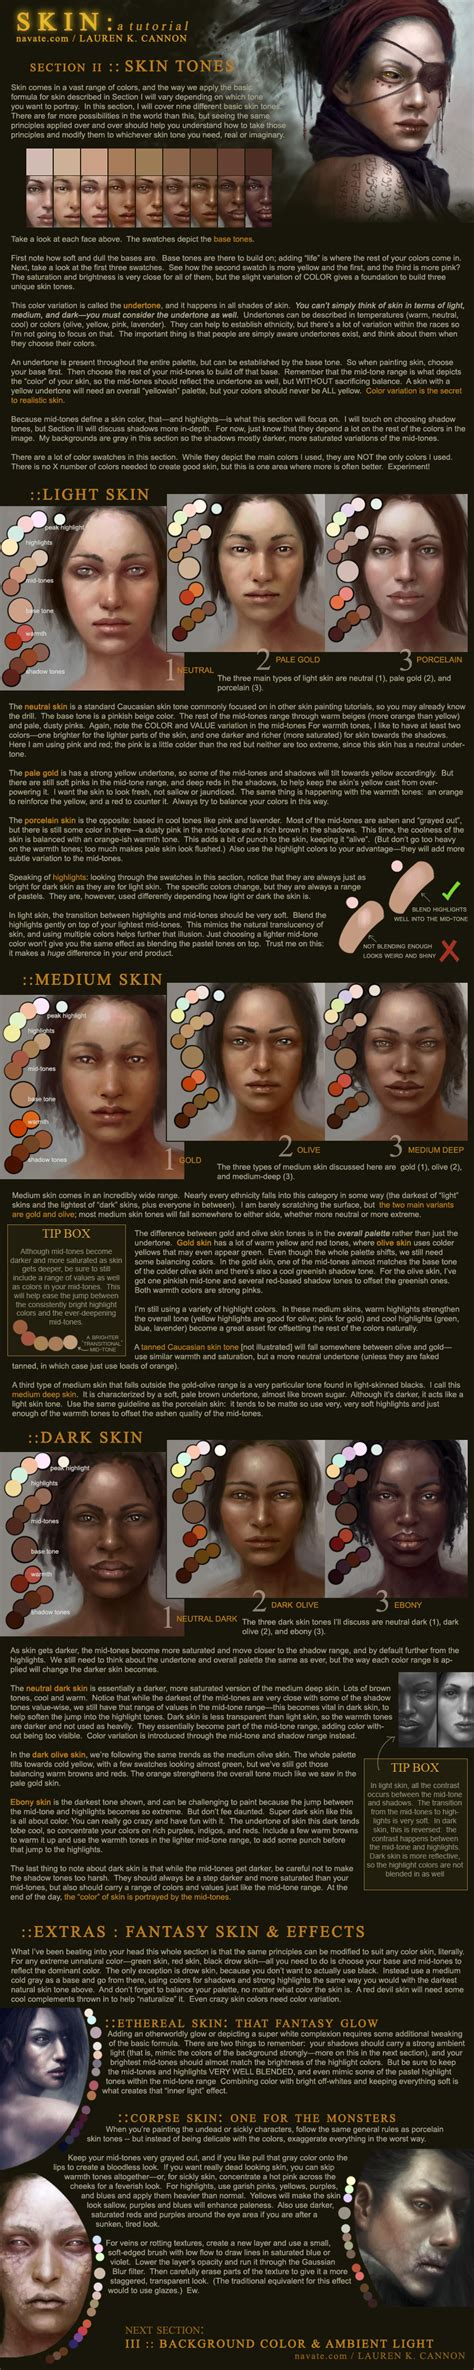 lightened skin patches picture 1